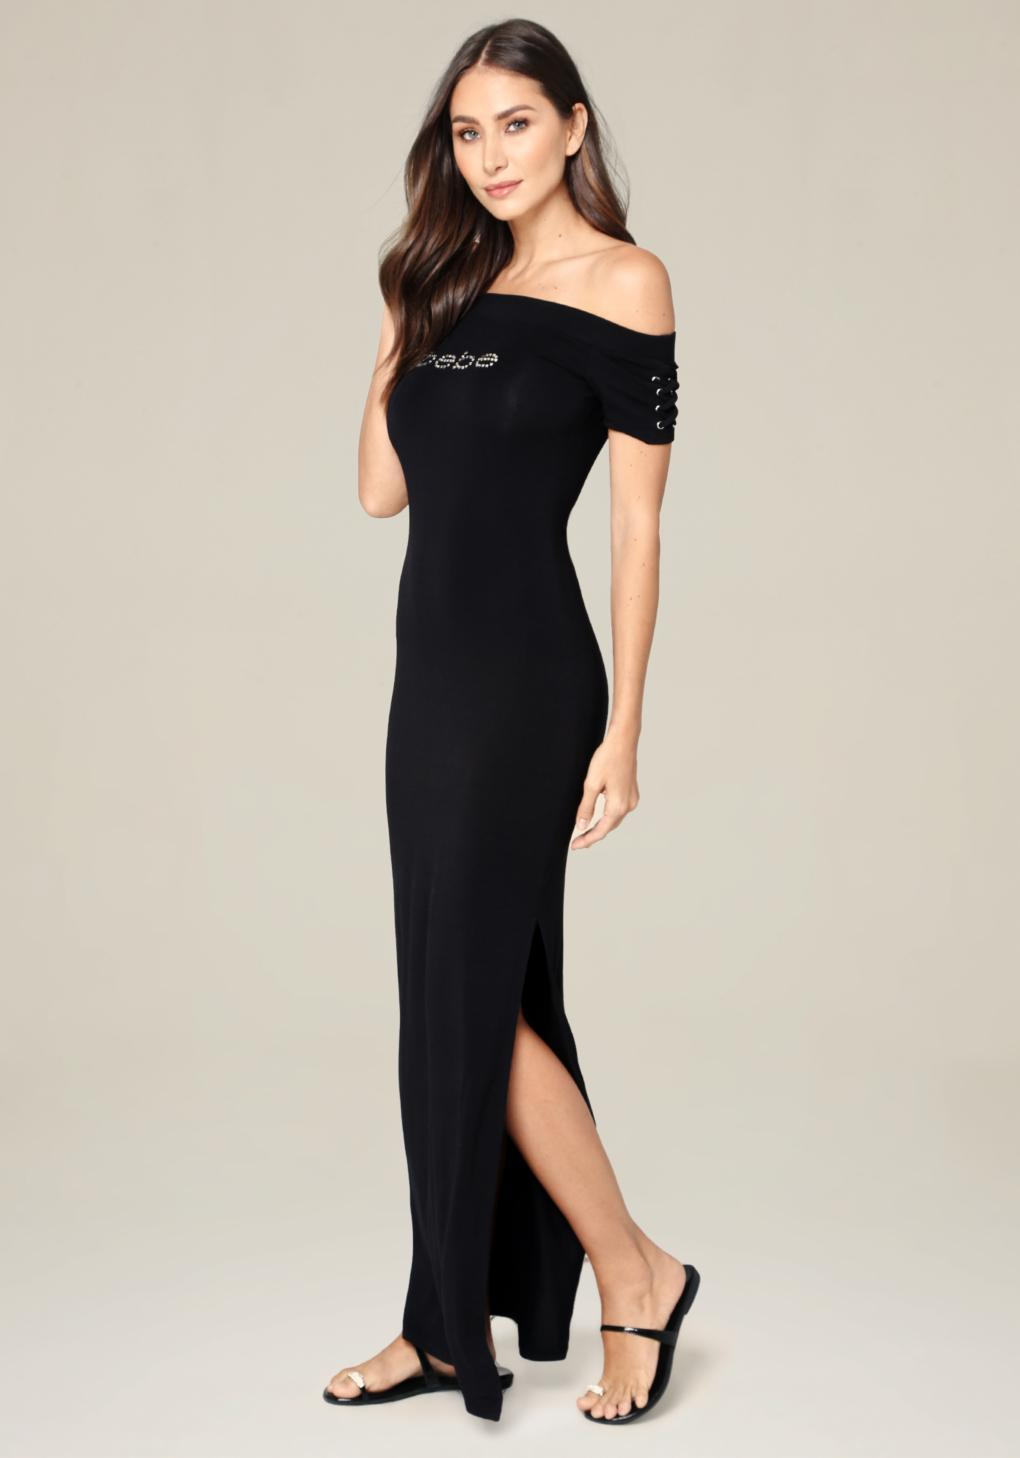 a43a88a9629 Bebe Off Shoulder Maxi Dress in Black - Lyst